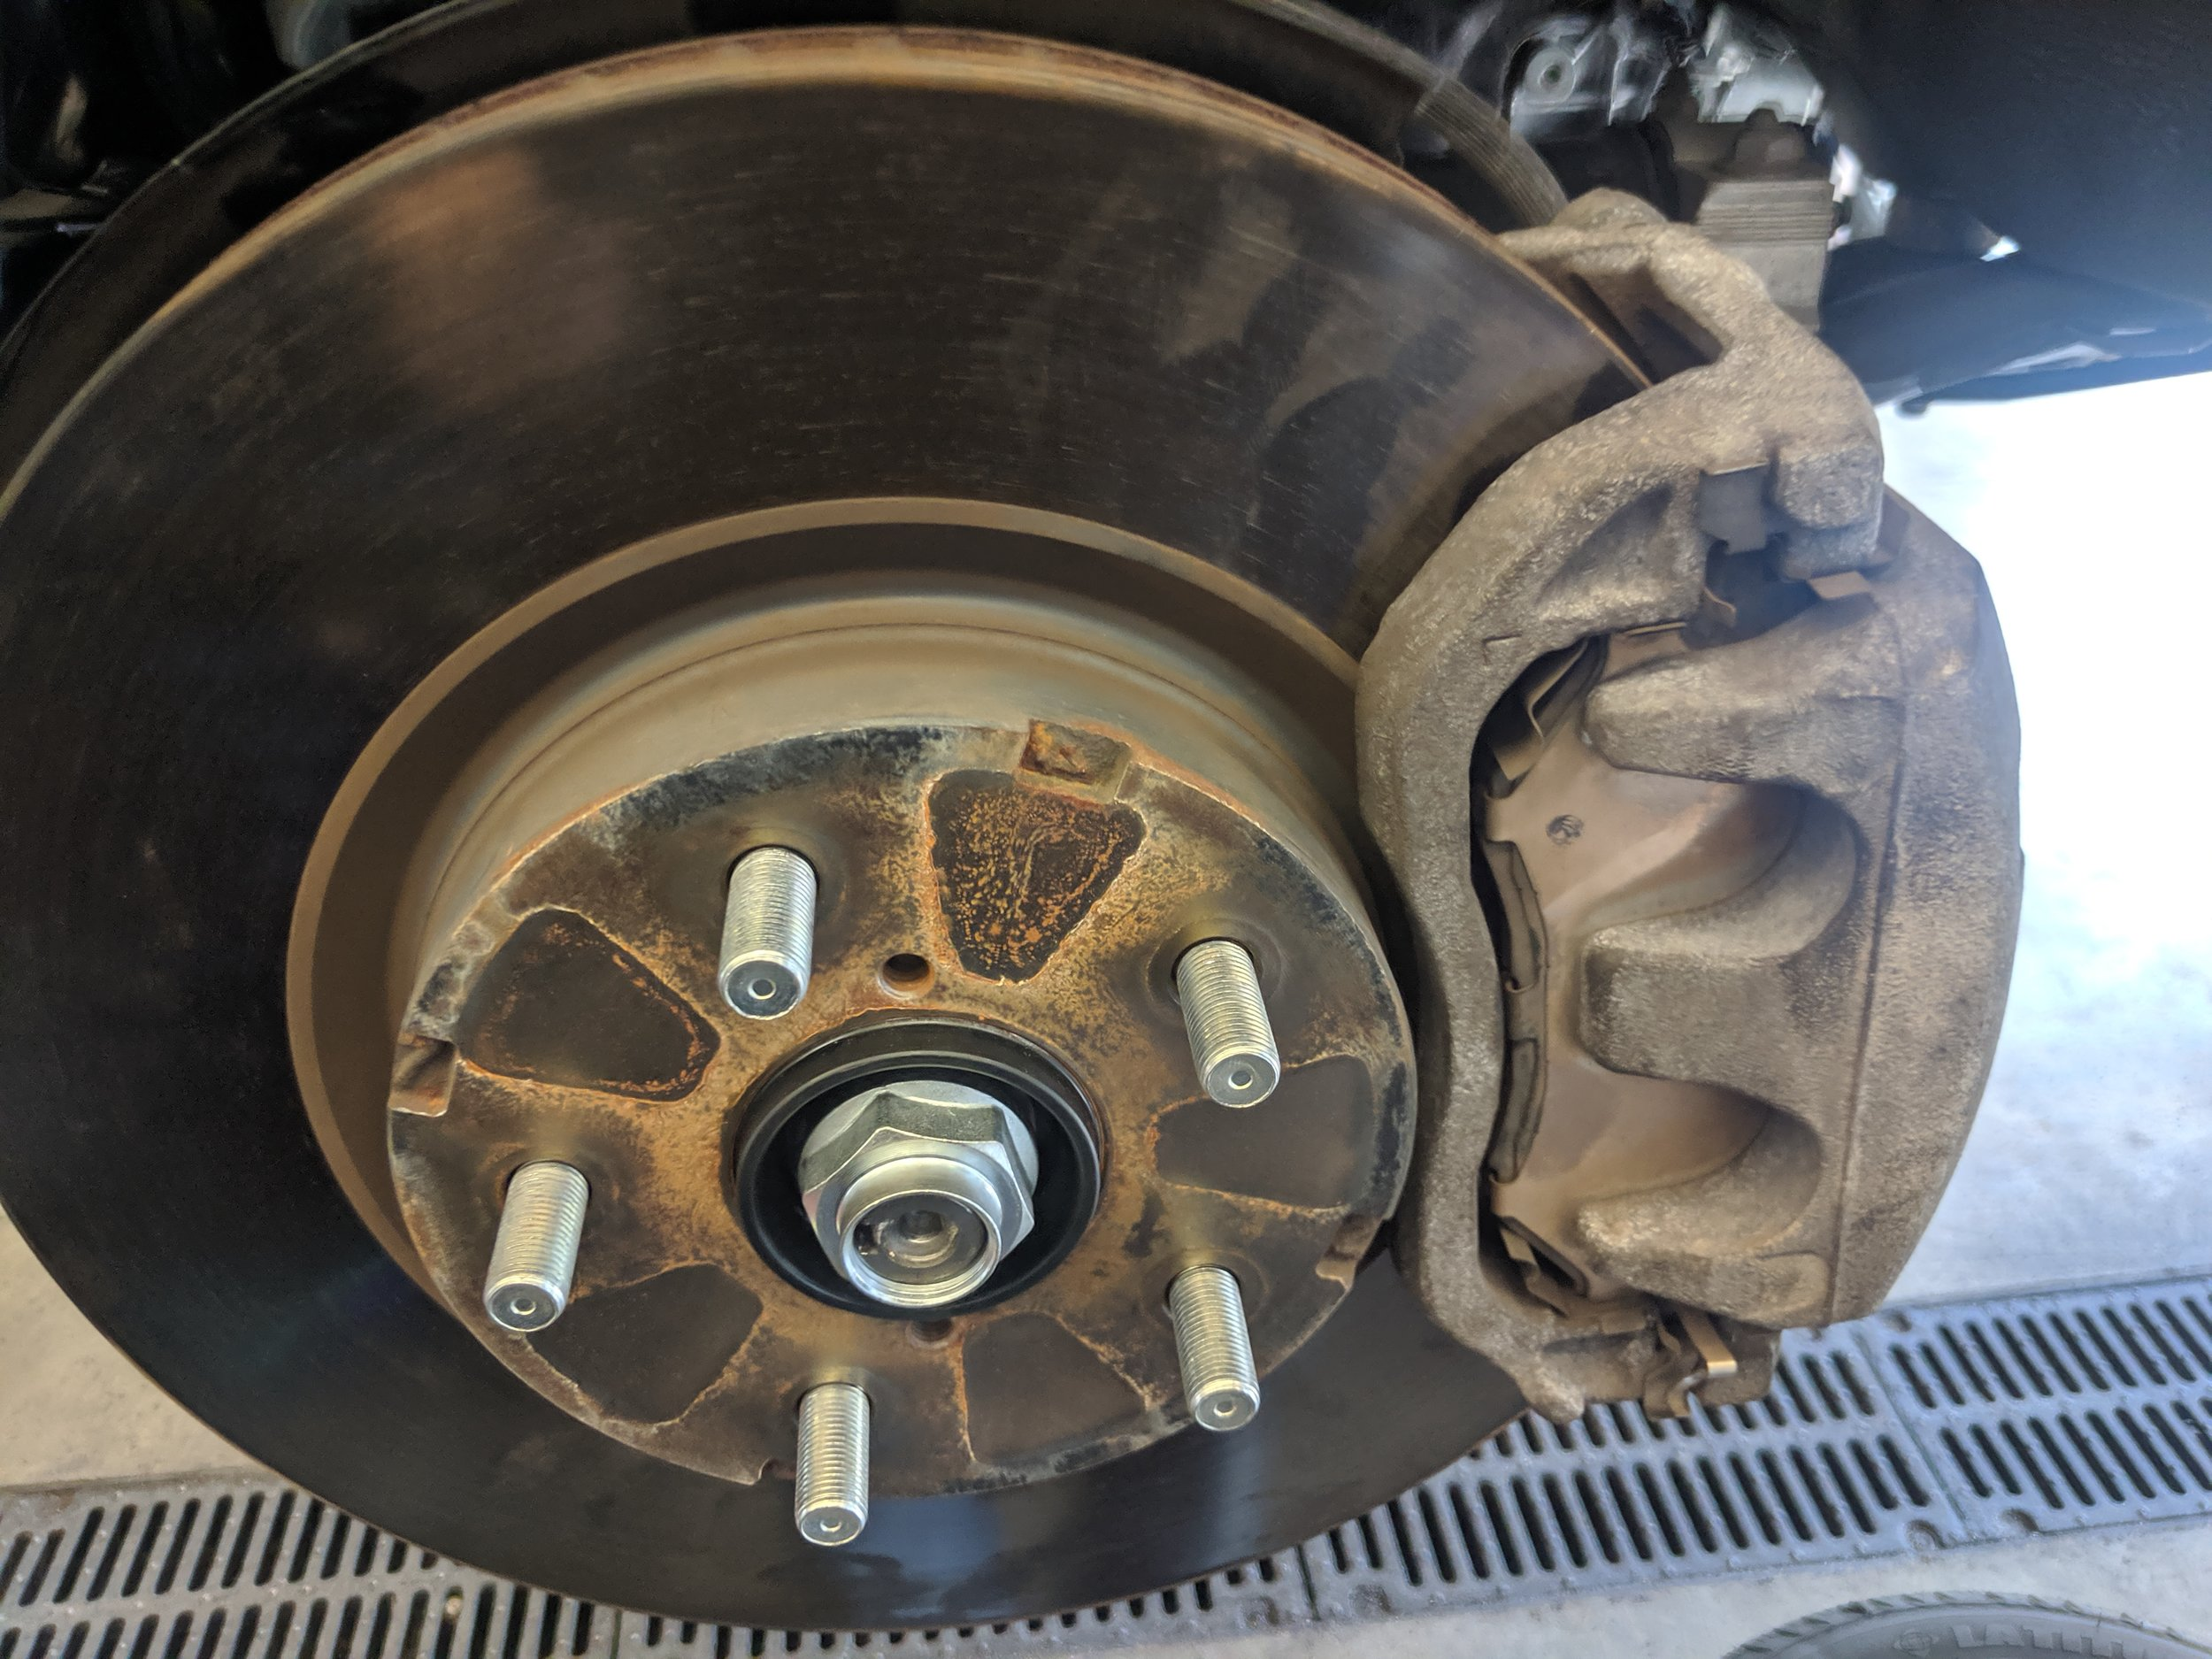 Axle nut loose and ready for removal.